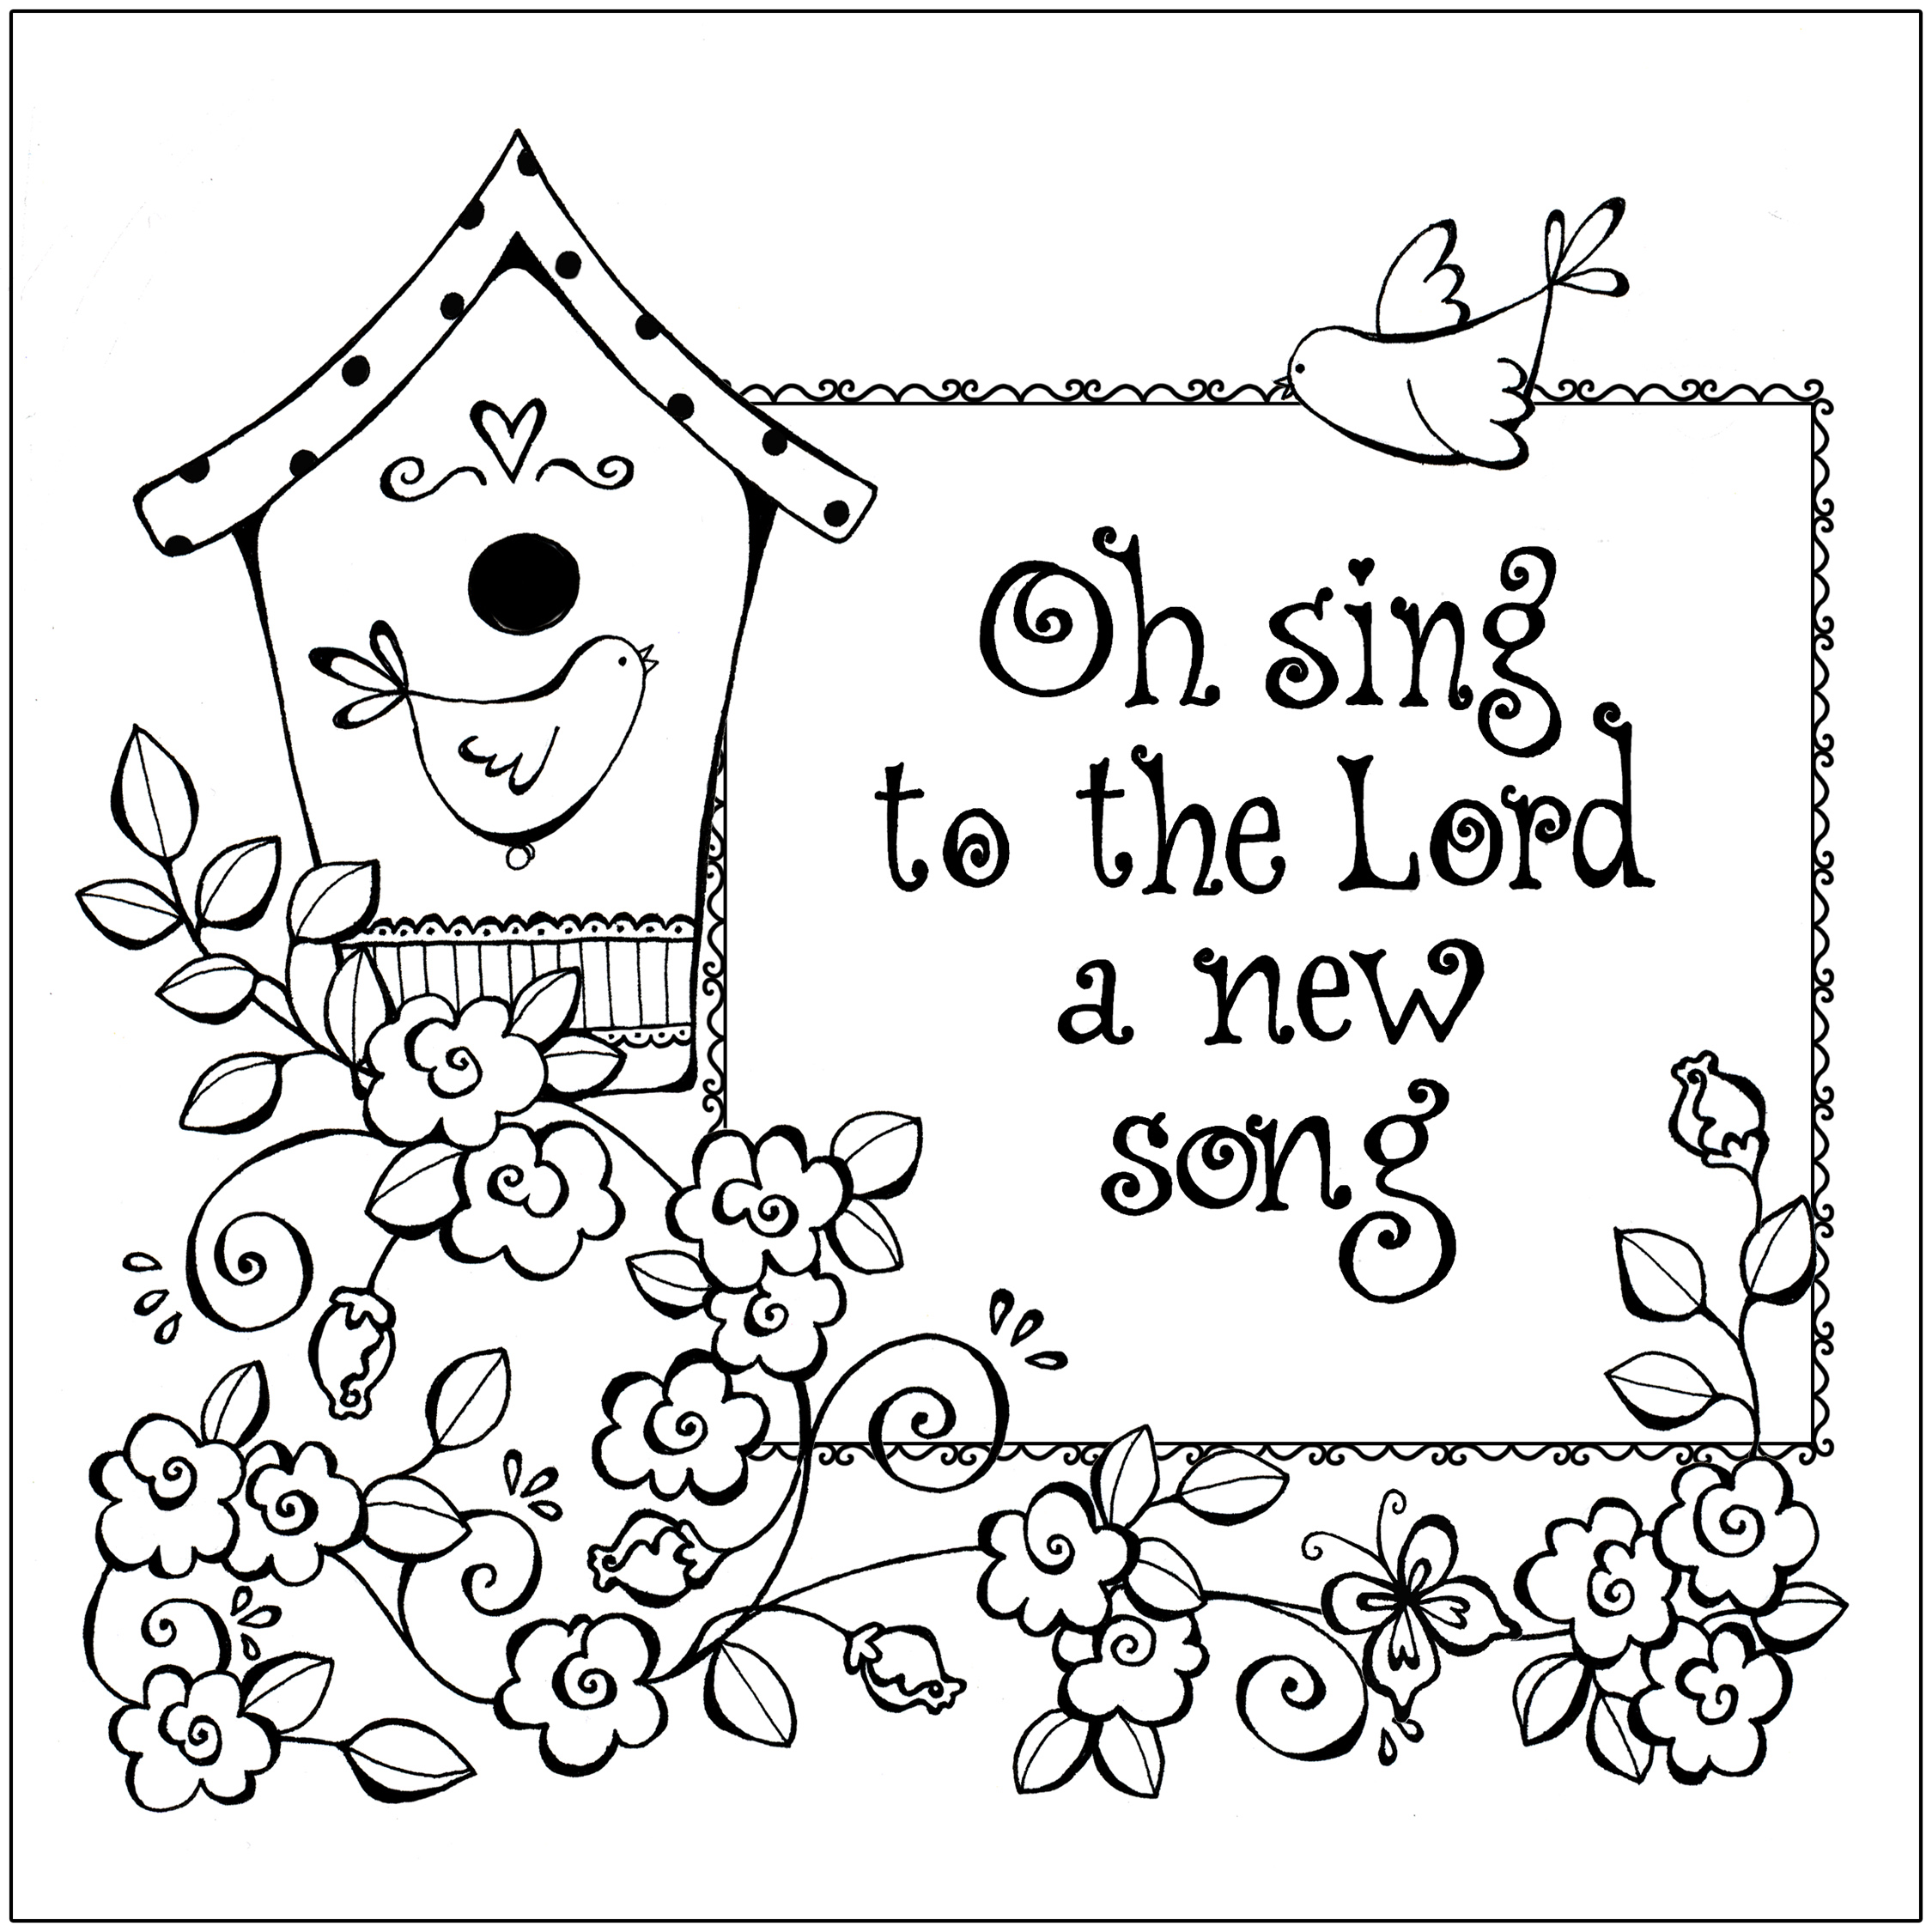 It's just a graphic of Punchy Free Printable Christian Coloring Pages